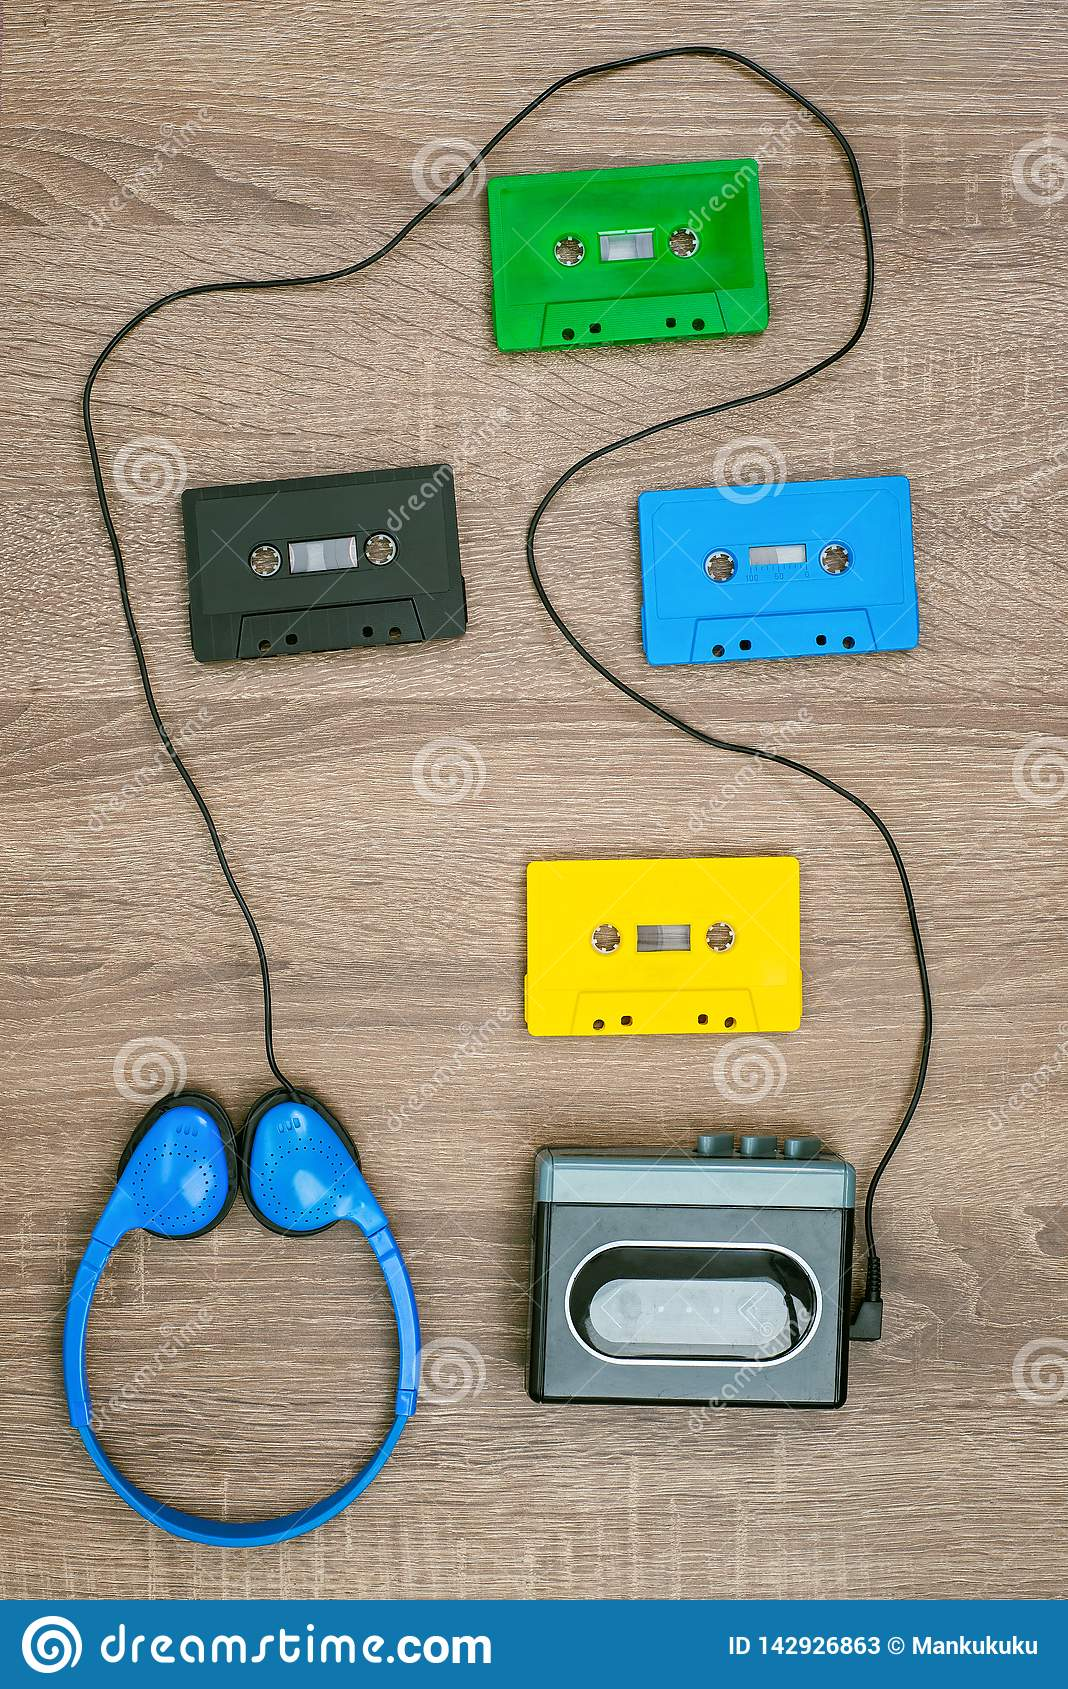 Vintage cassette player, cassetes and headphones on the wooden background.